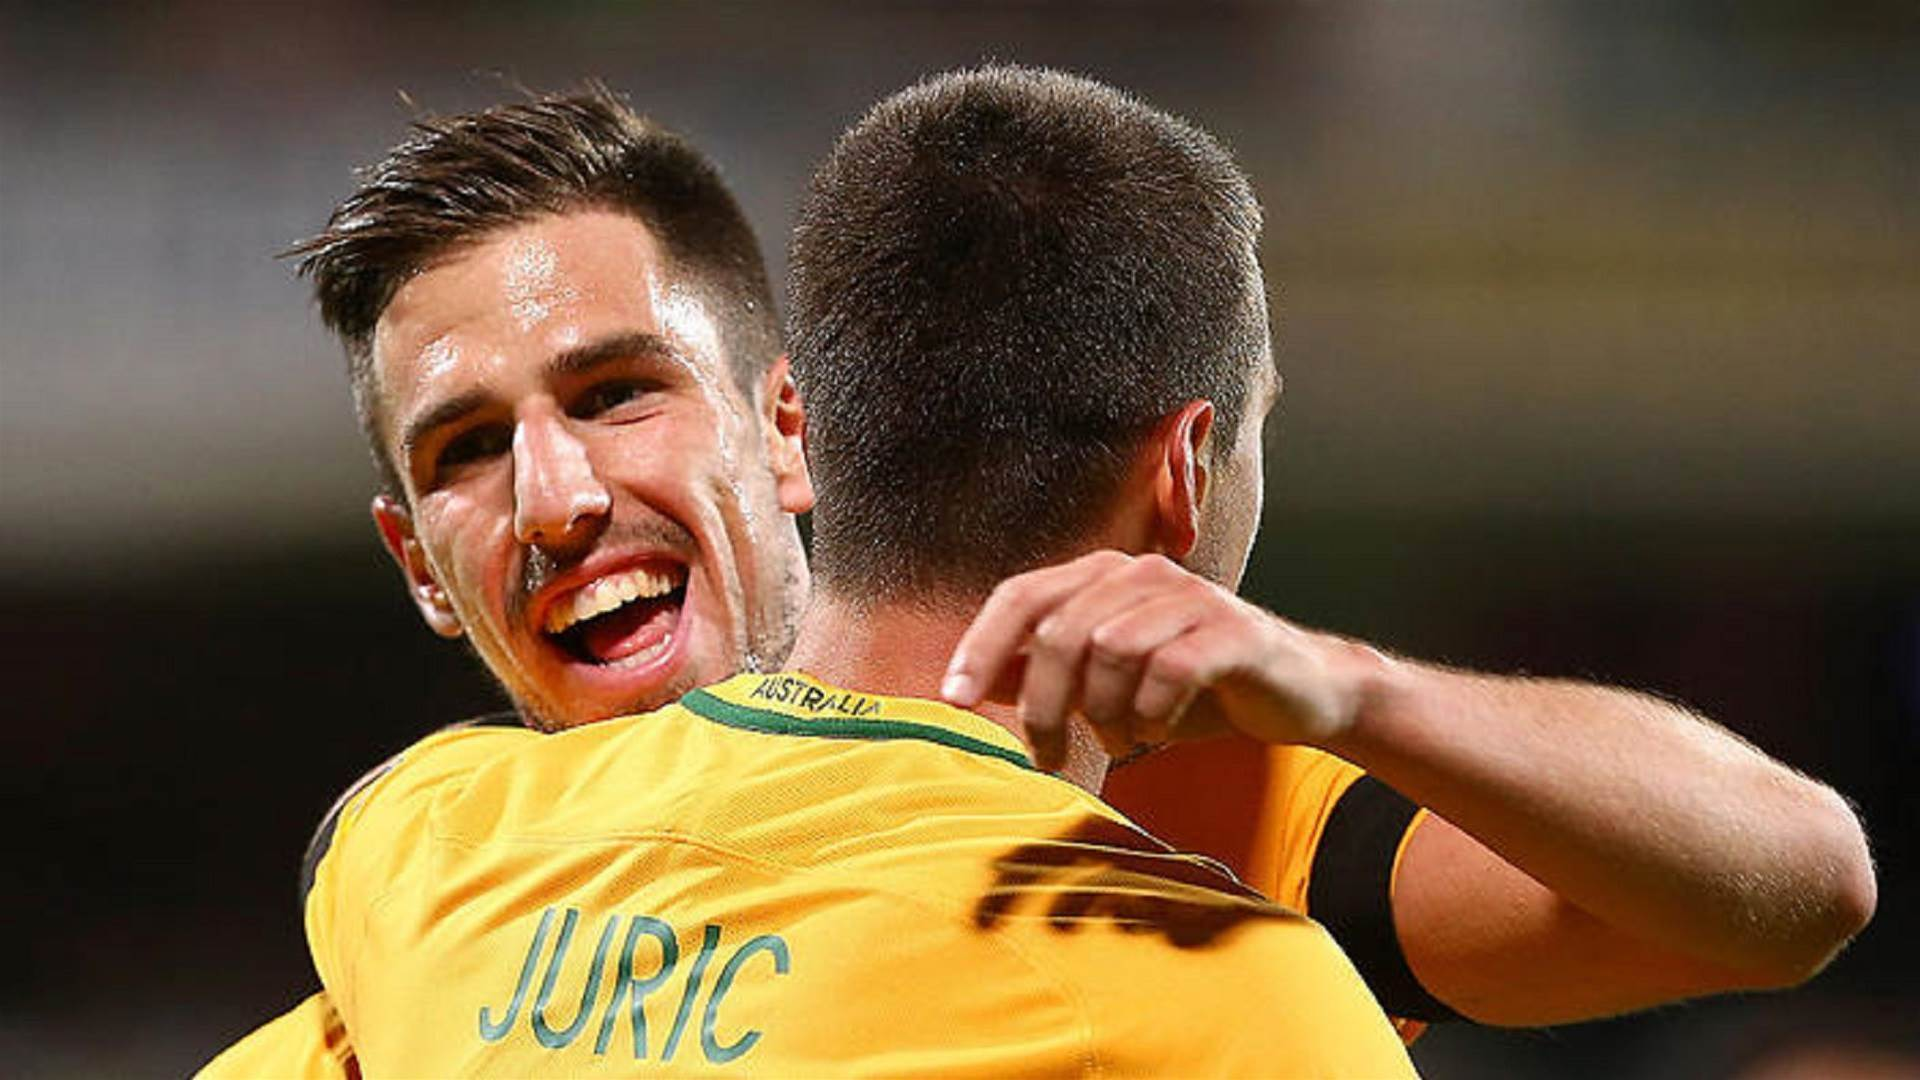 Degenek sought Ange approval